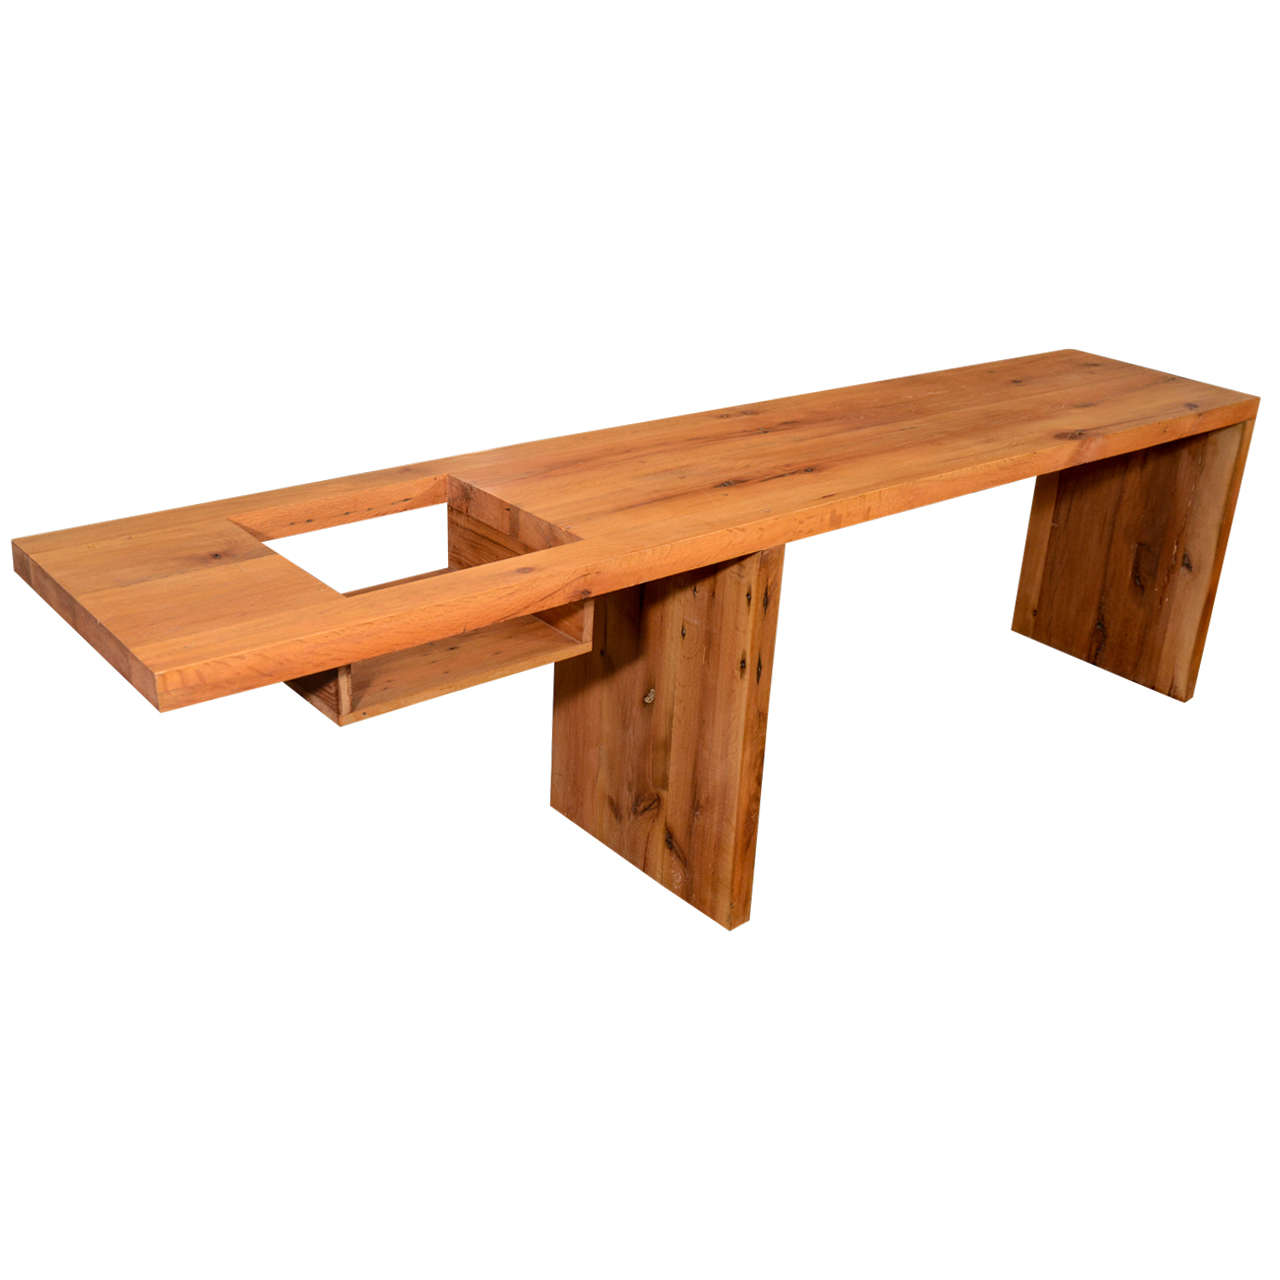 #3F1403 This Cantilevered Desk In Vintage White Oak Is No Longer Available. with 1280x1280 px of Best Classic White Desk 12801280 image @ avoidforclosure.info